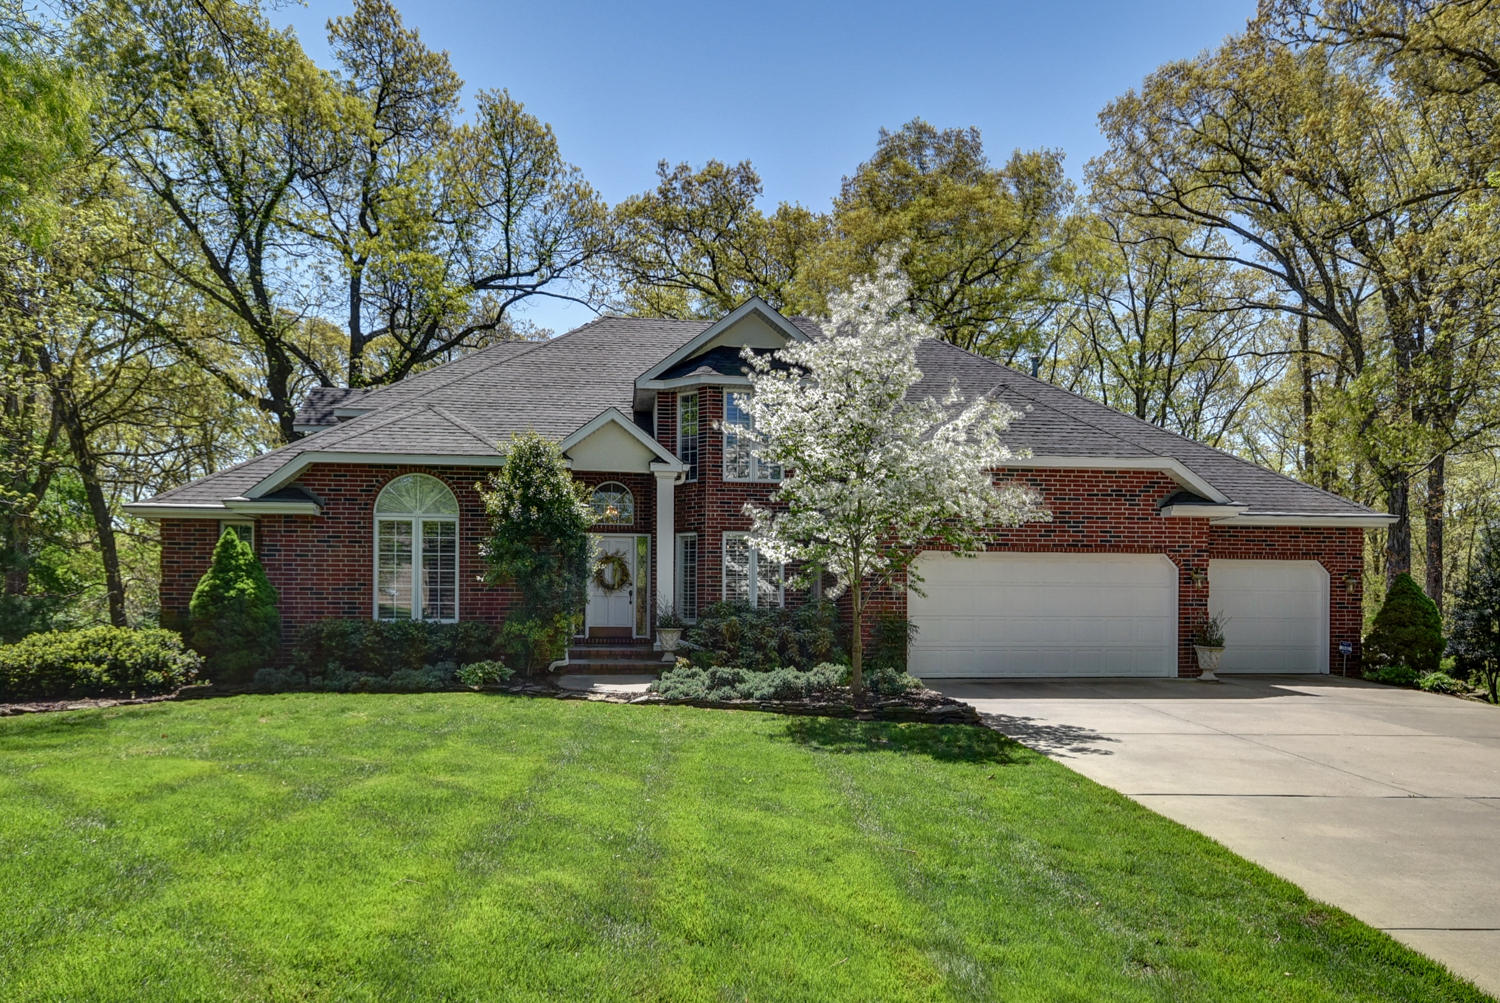 4366 East Misty Woods Street Springfield, MO 65809